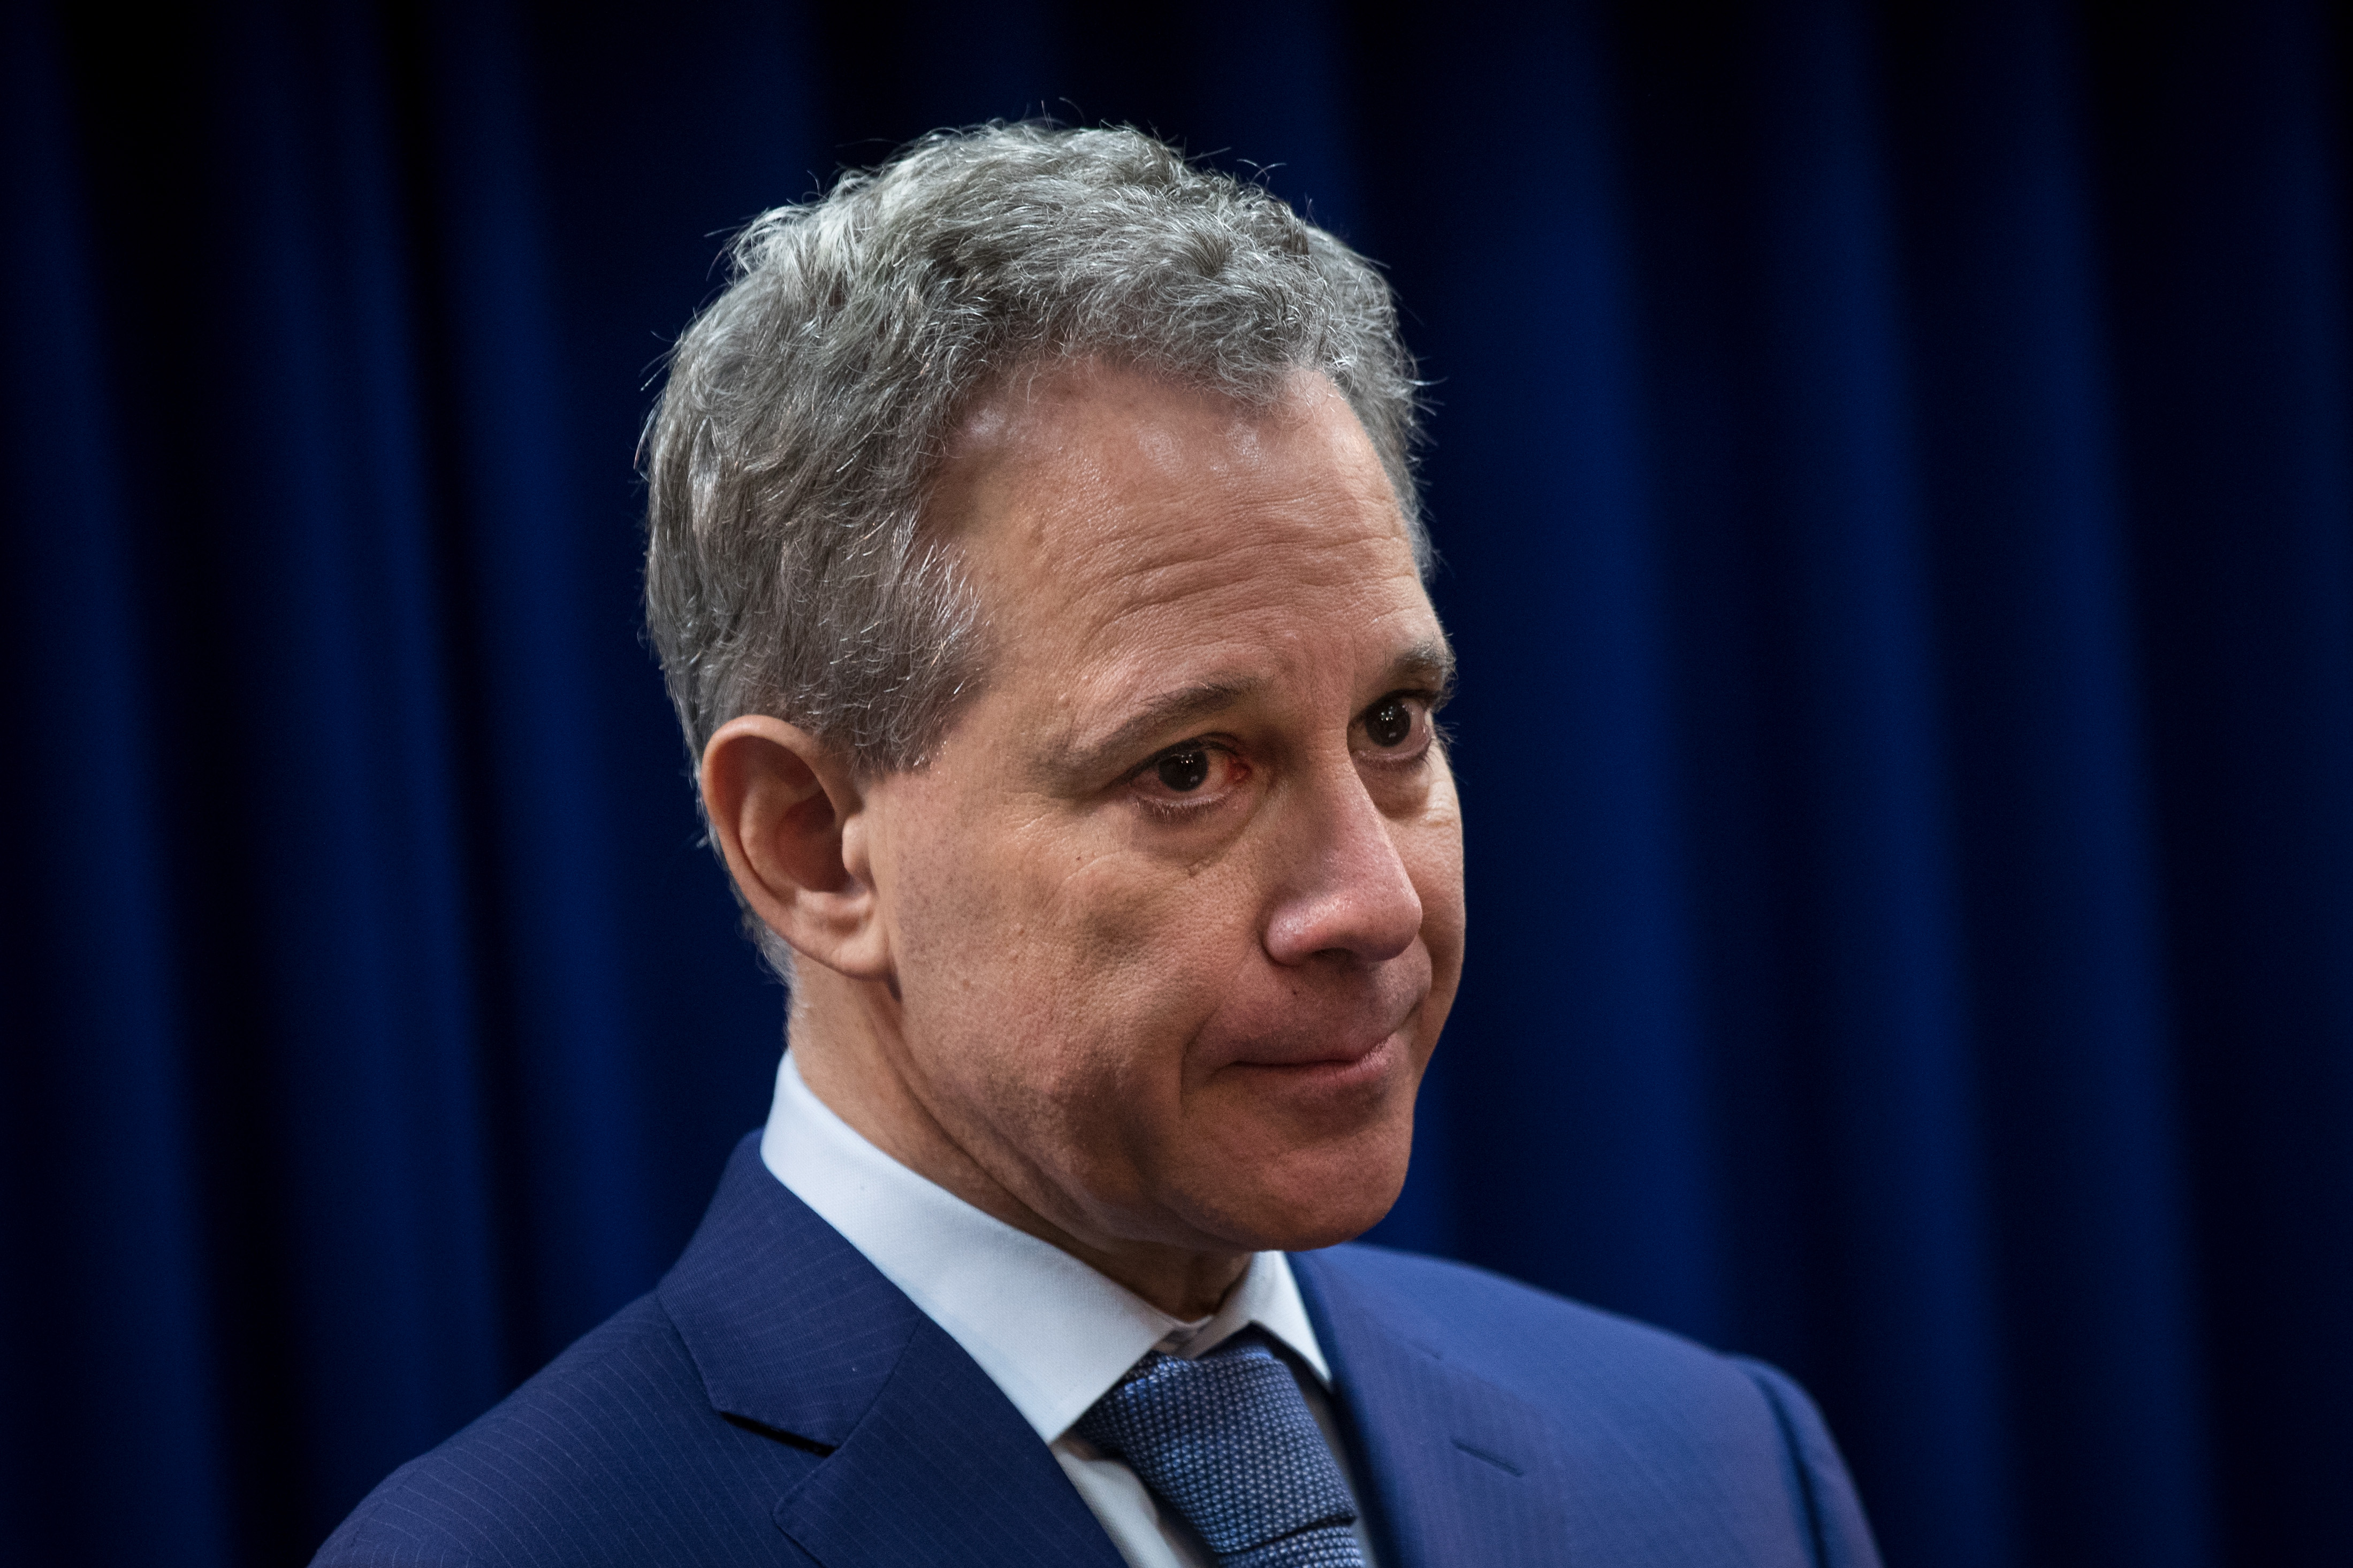 New York State Attorney General Eric Schneiderman looks on during a press conference to call for an end of Immigration and Customs Enforcement (ICE) raids in New York state courts on Aug. 3, 2017 in the Brooklyn borough of New York City.